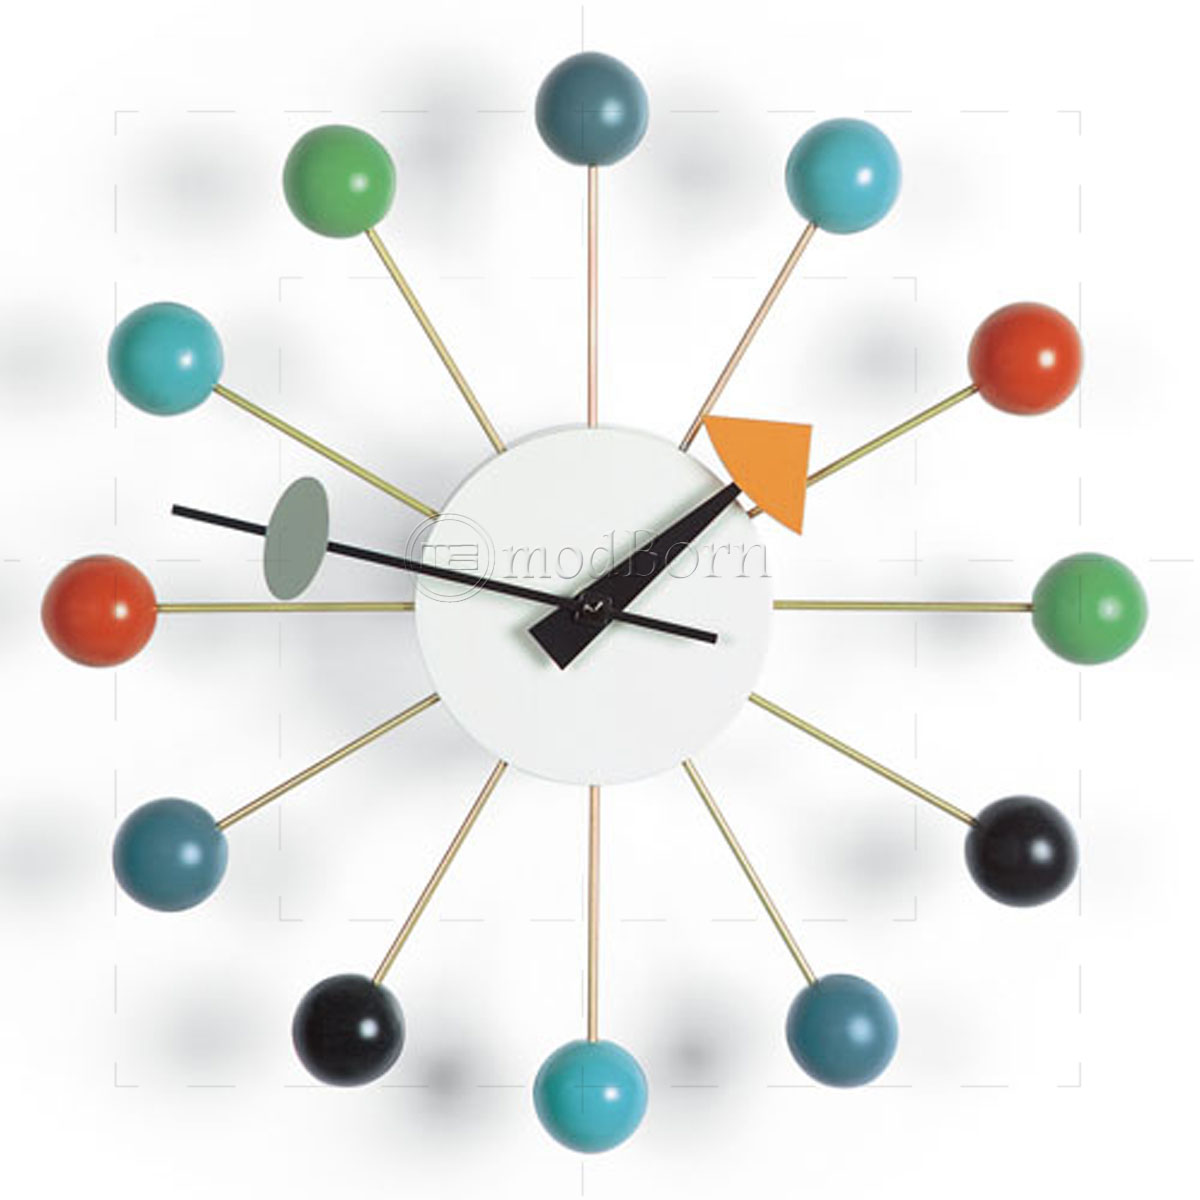 george nelson style ball wall clock mutli color. Black Bedroom Furniture Sets. Home Design Ideas